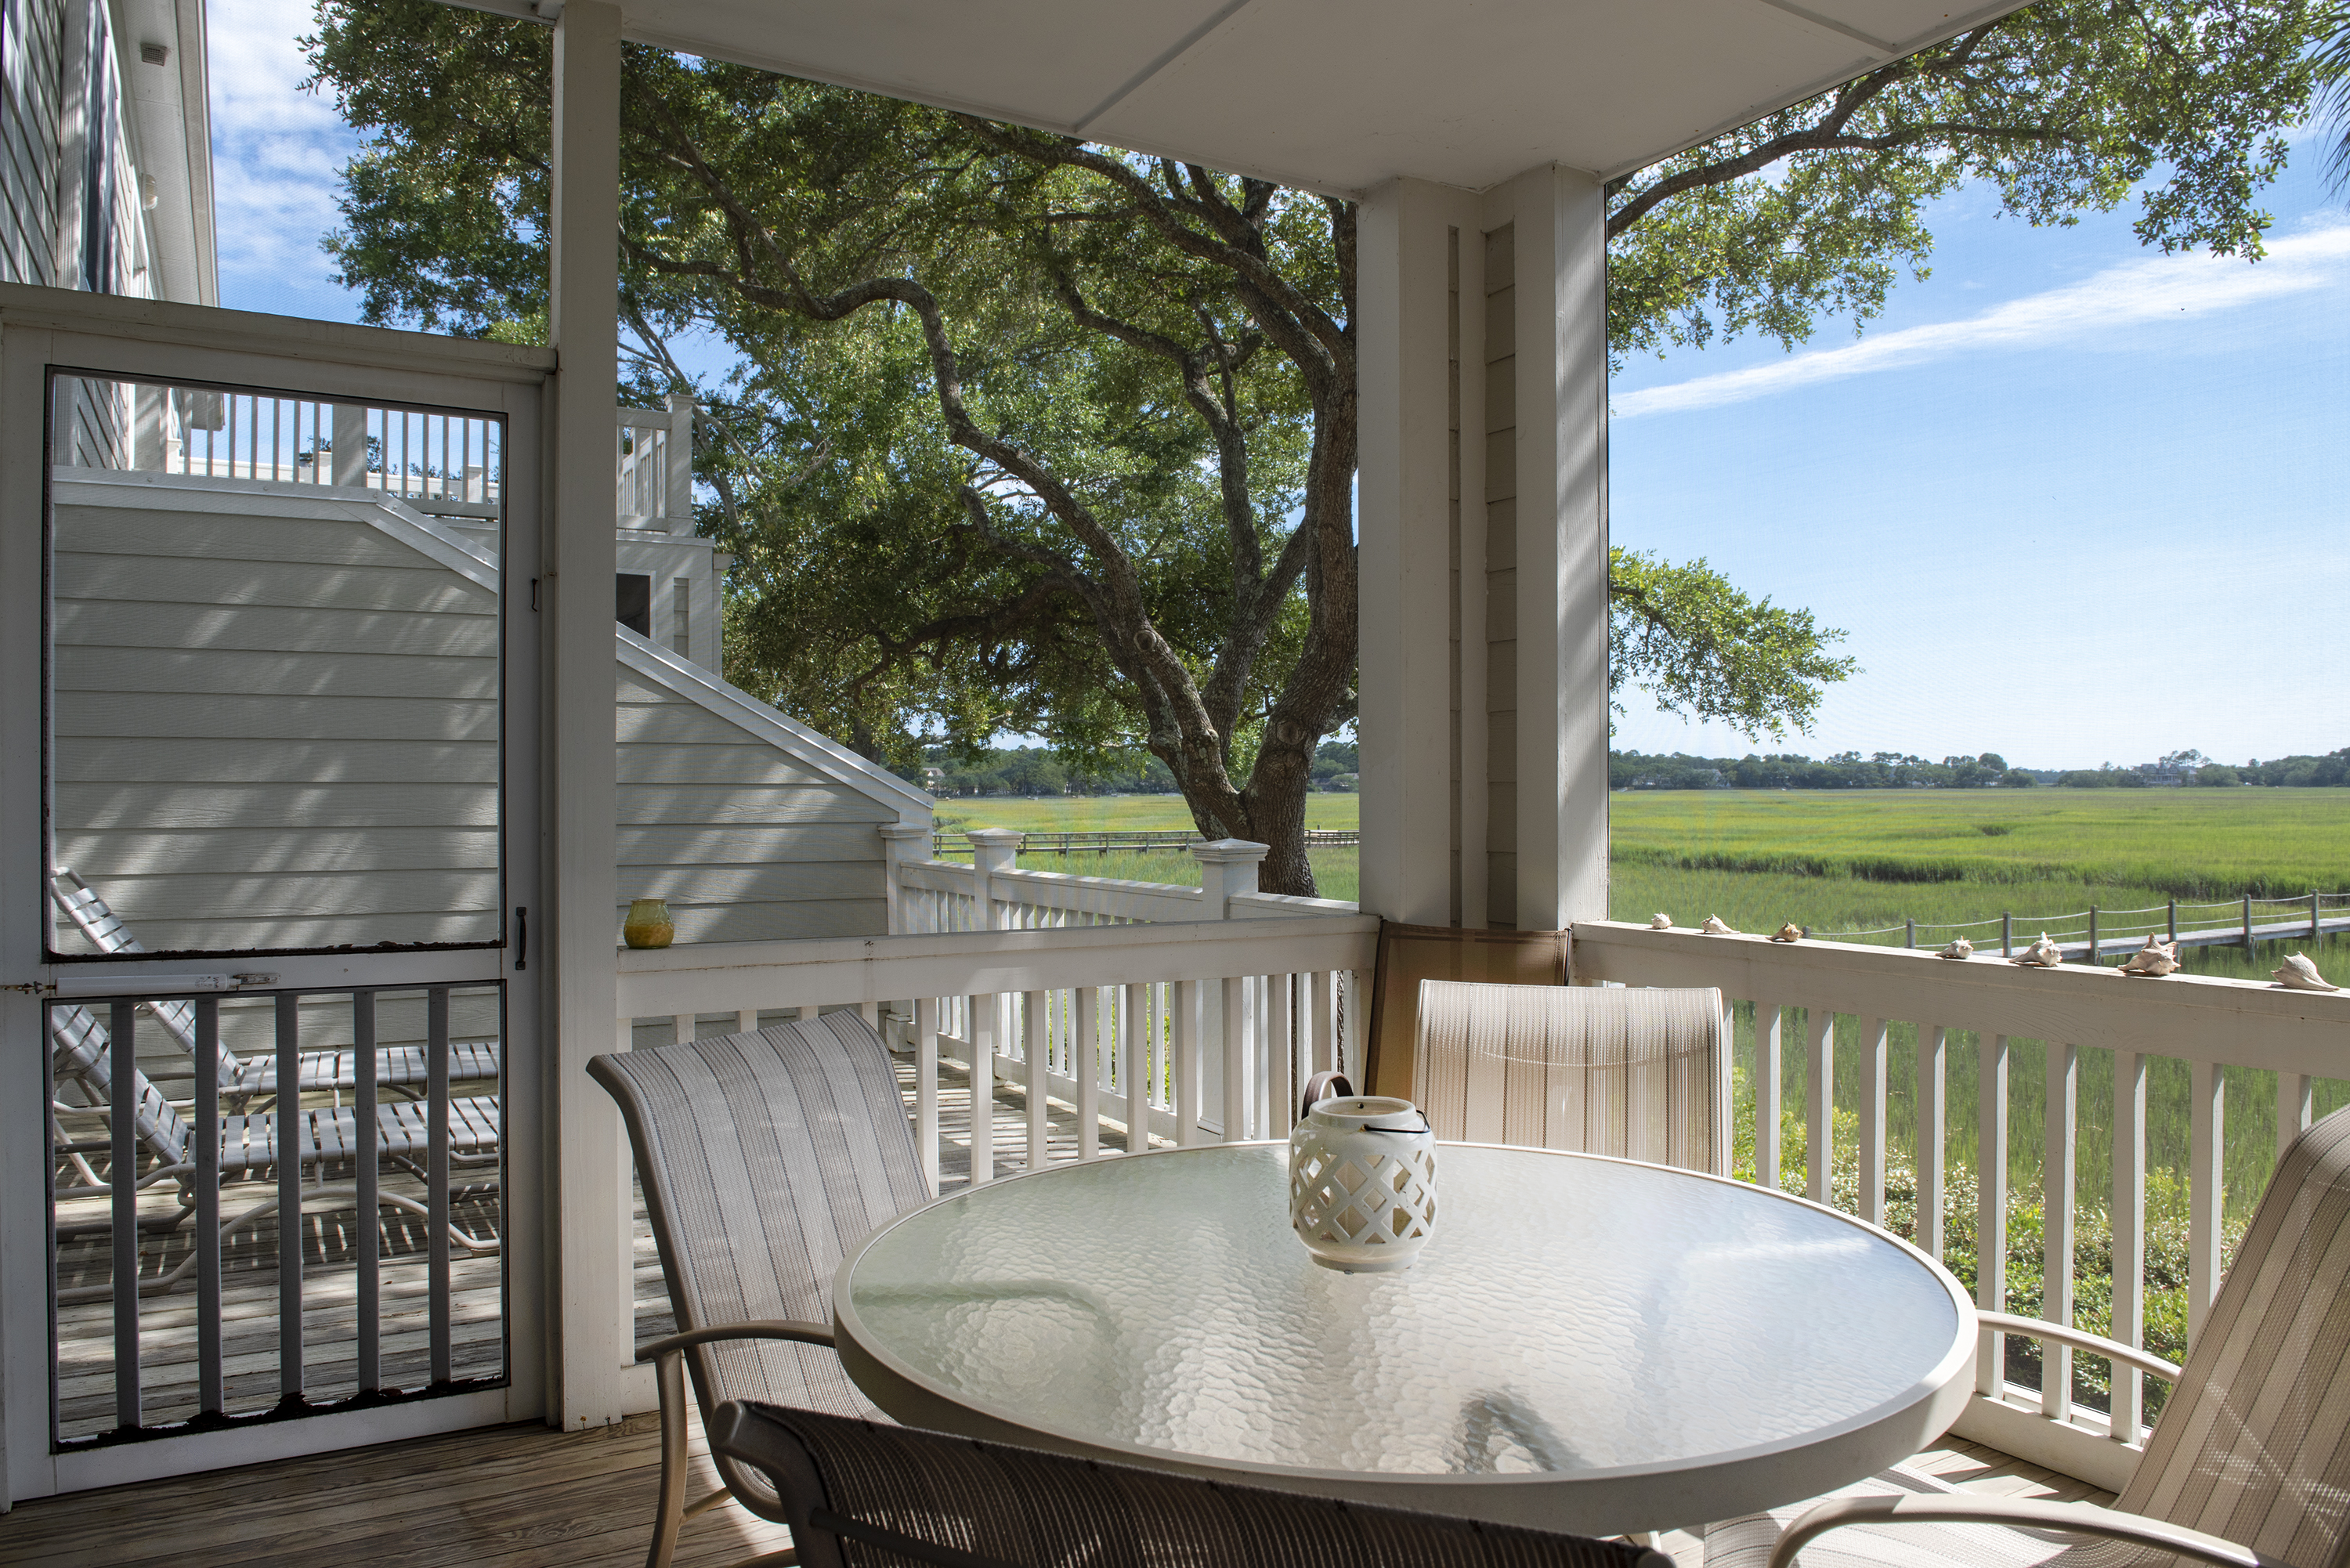 The creened porch has a dining table for 4.